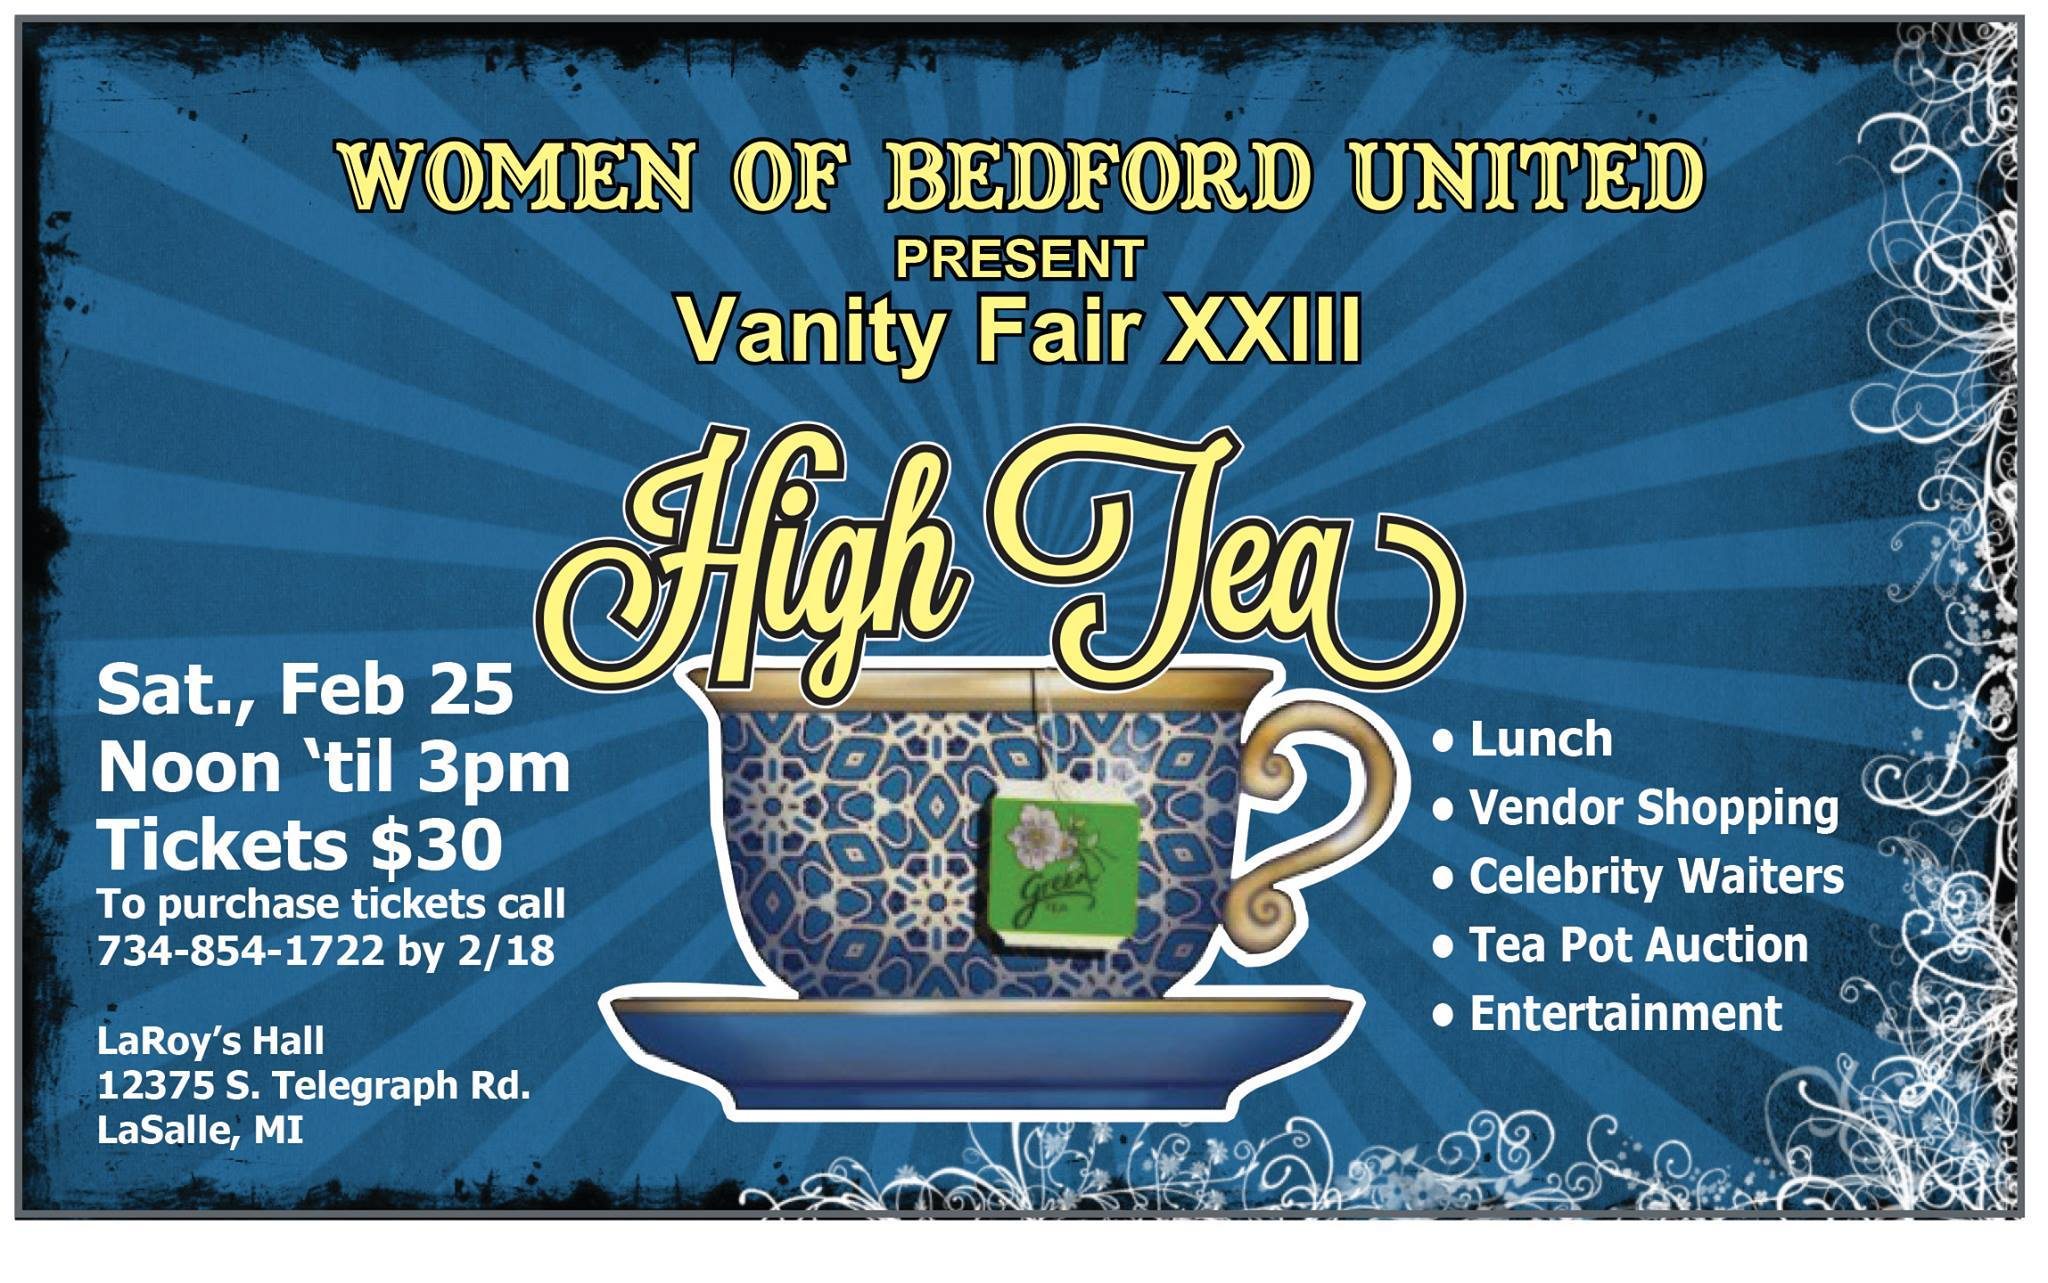 Get Your Tickets Now For The Annual Women Of Bedford United High Tea